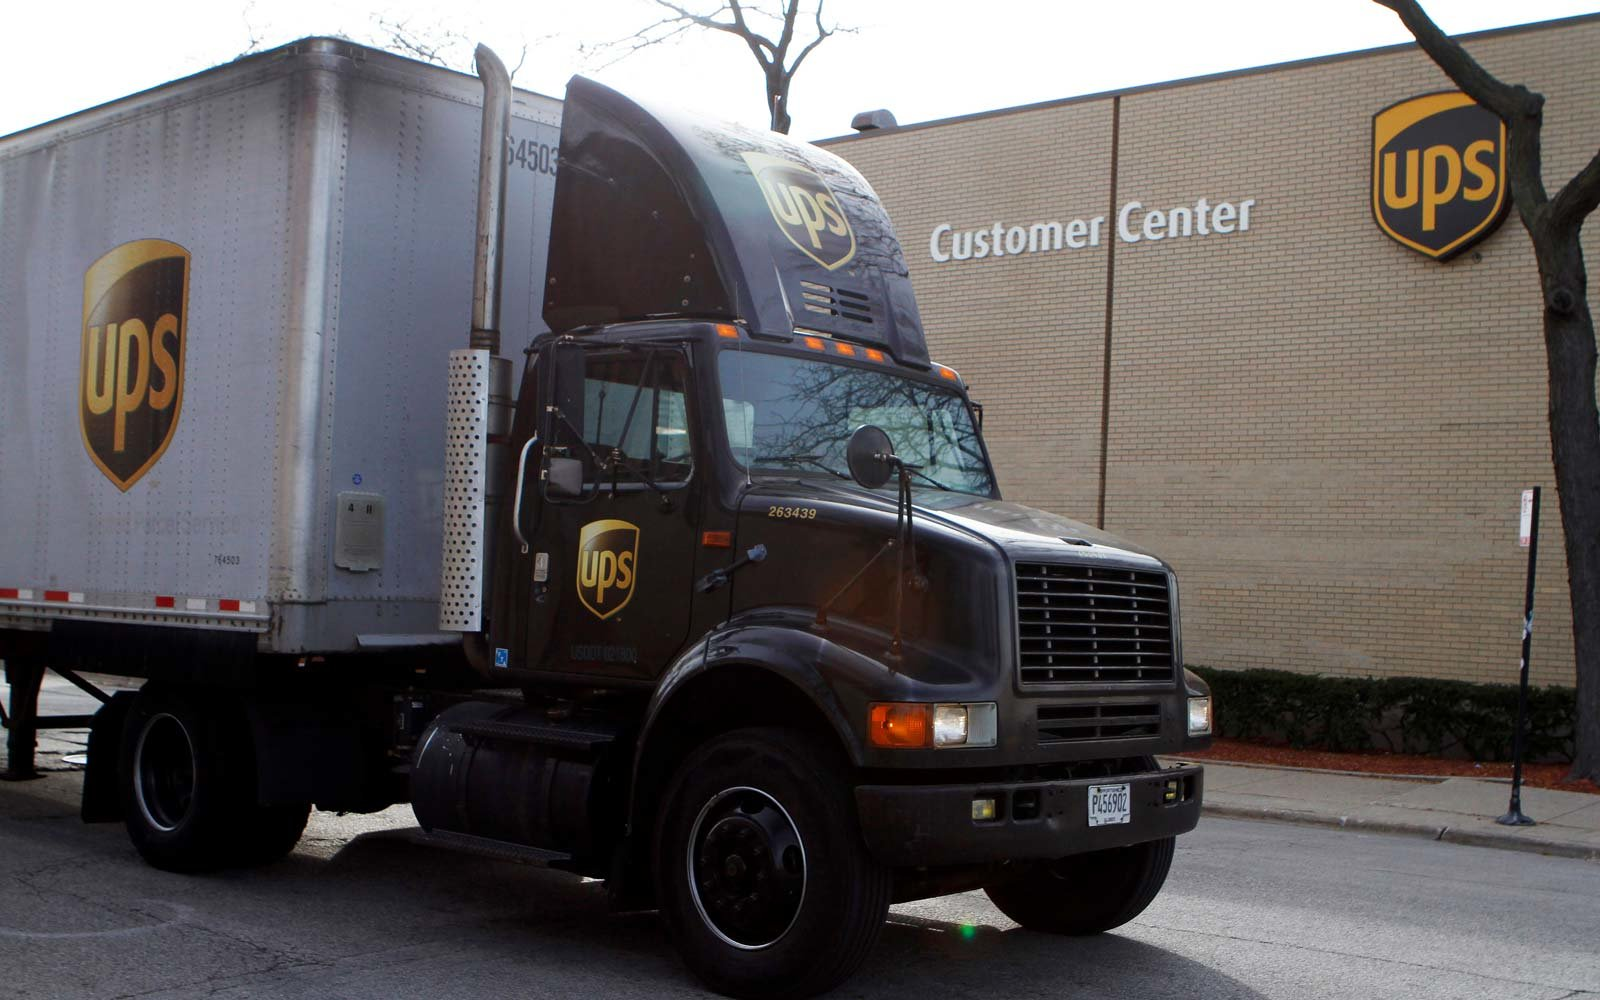 A United Parcel Service (UPS) truck leaves the yard